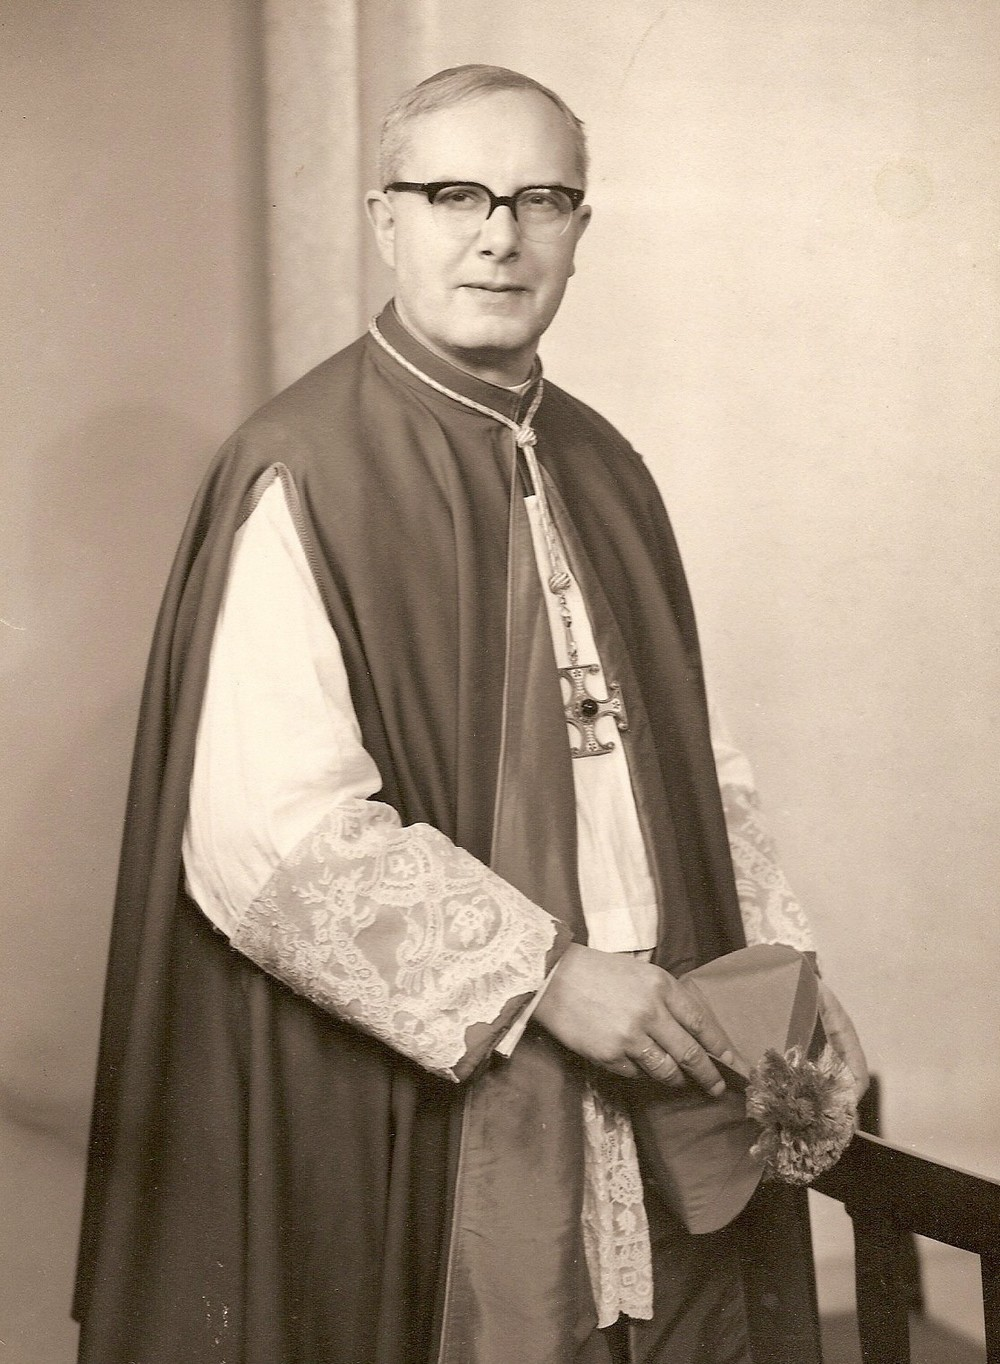 Bishop Gordon Wheeler